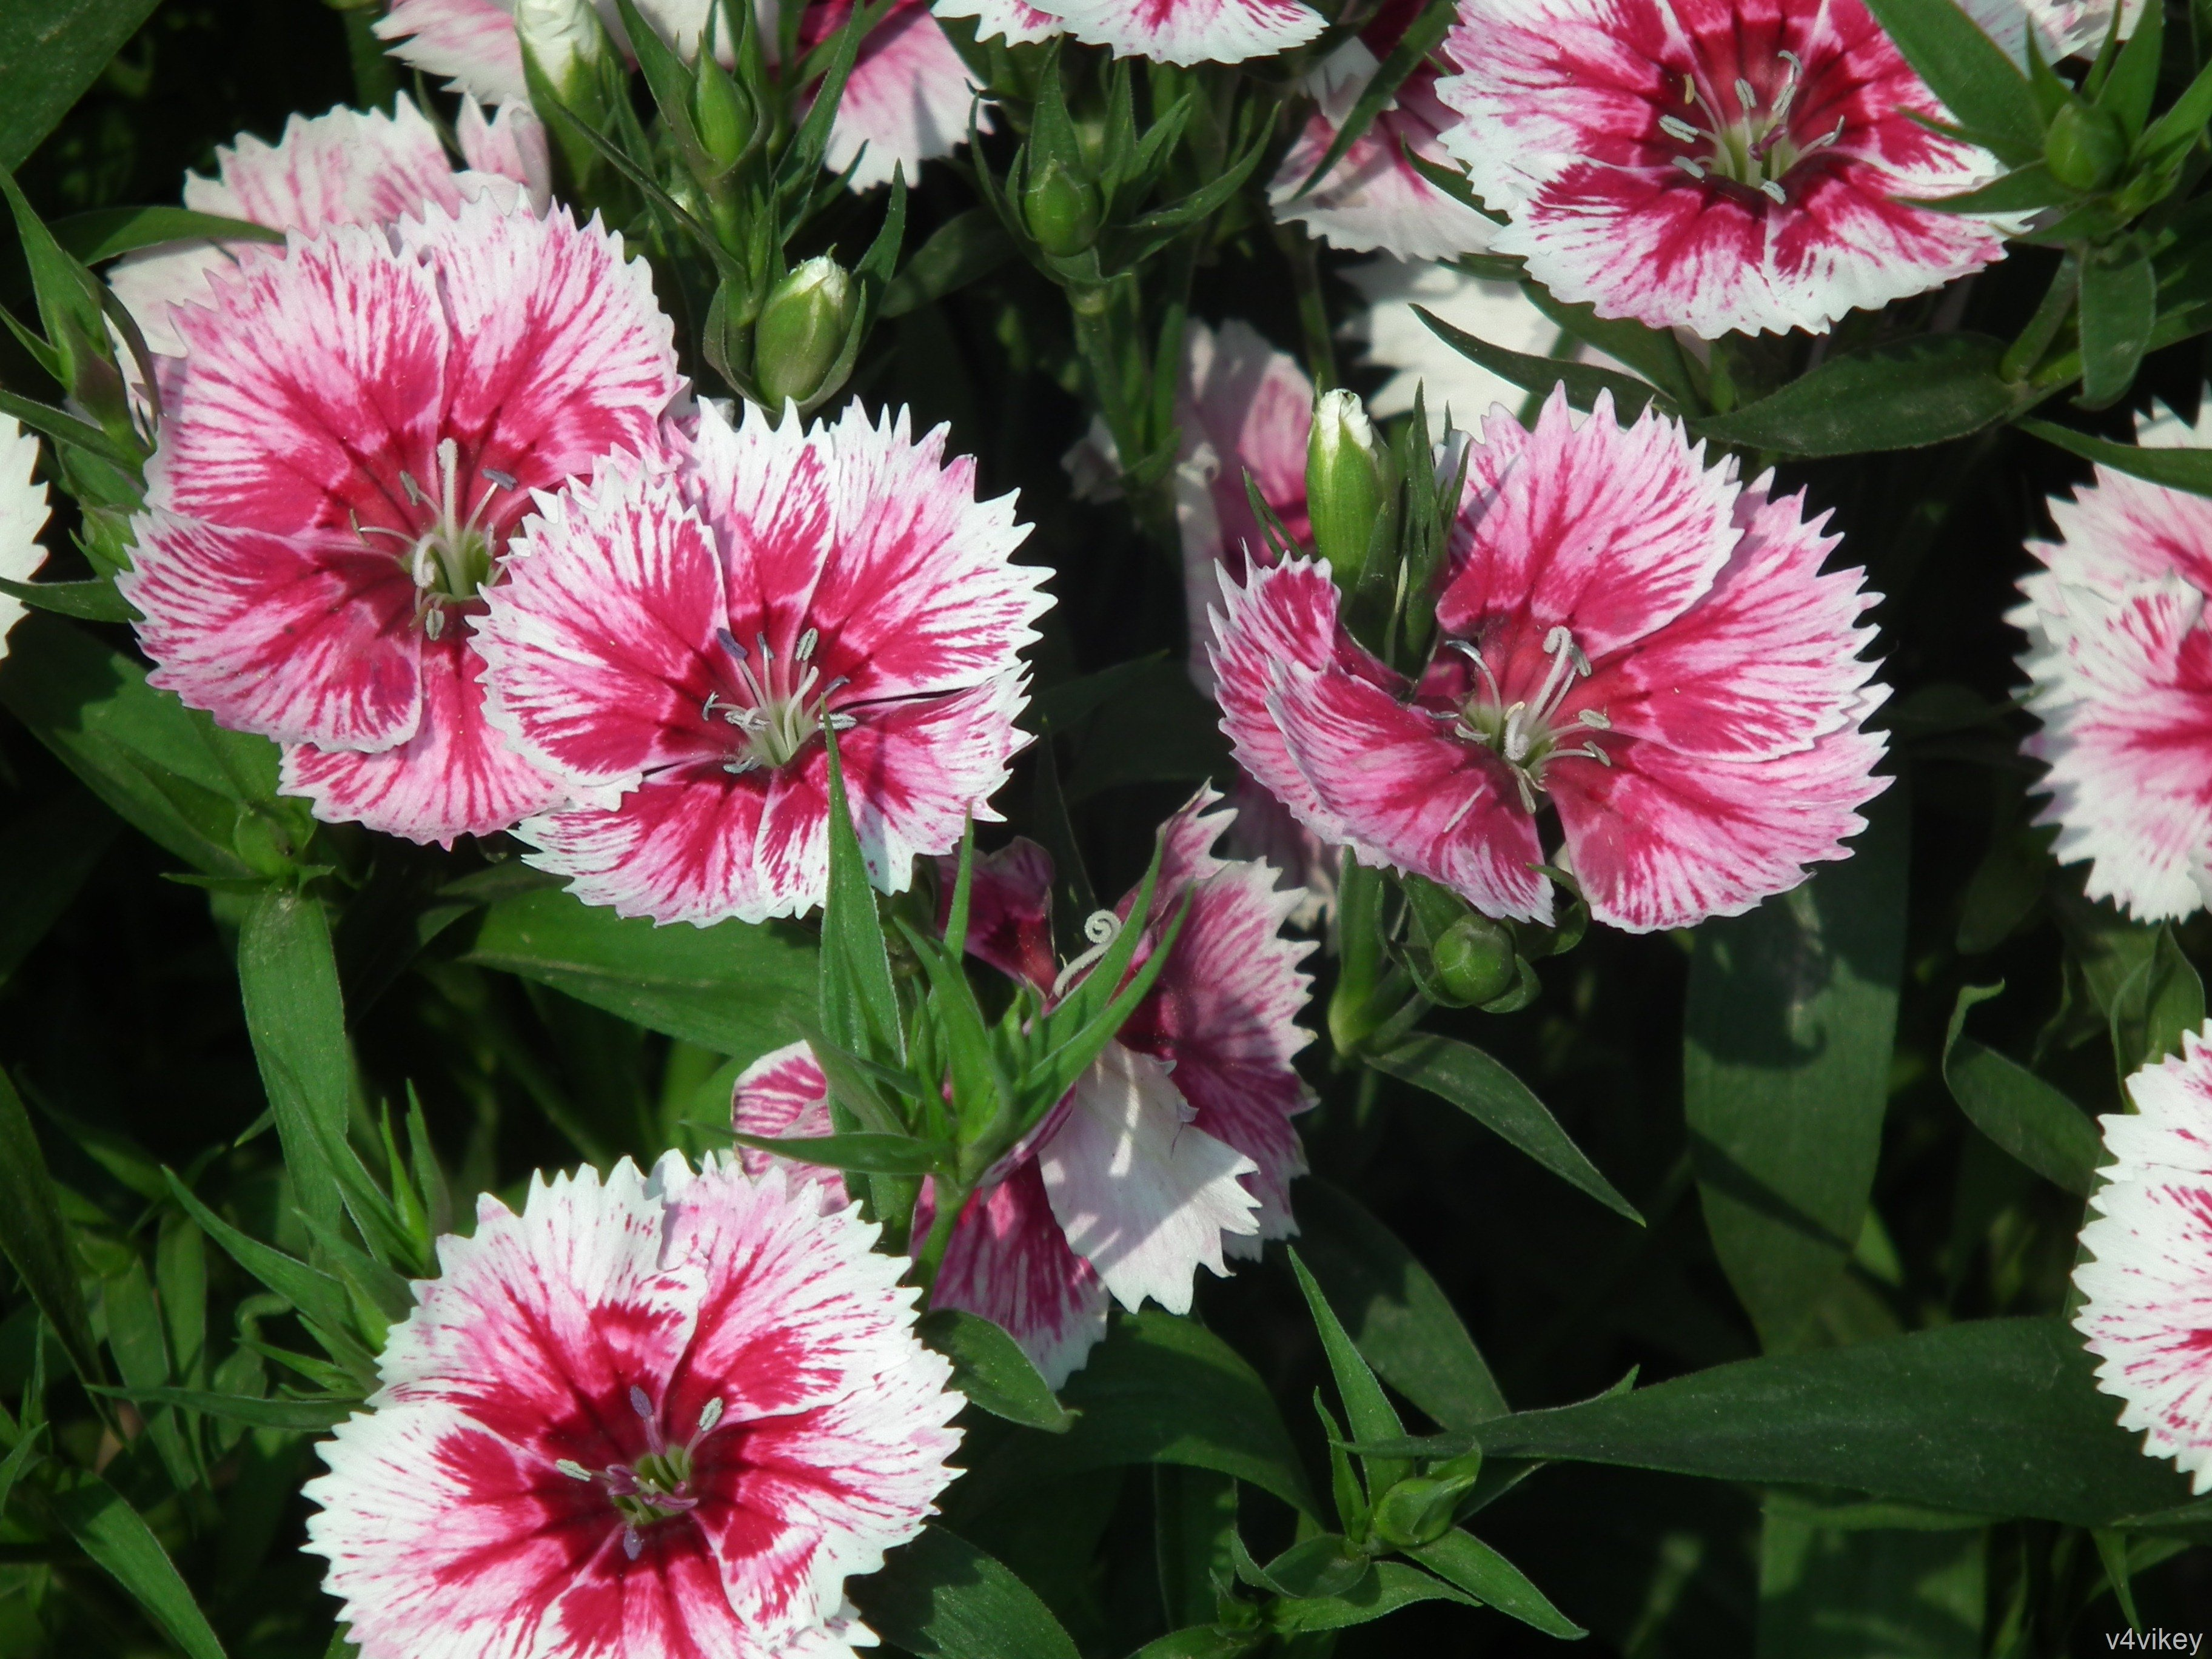 Arctic Fire Dianthus Flowers Wallpaper Tadka 3648x2736